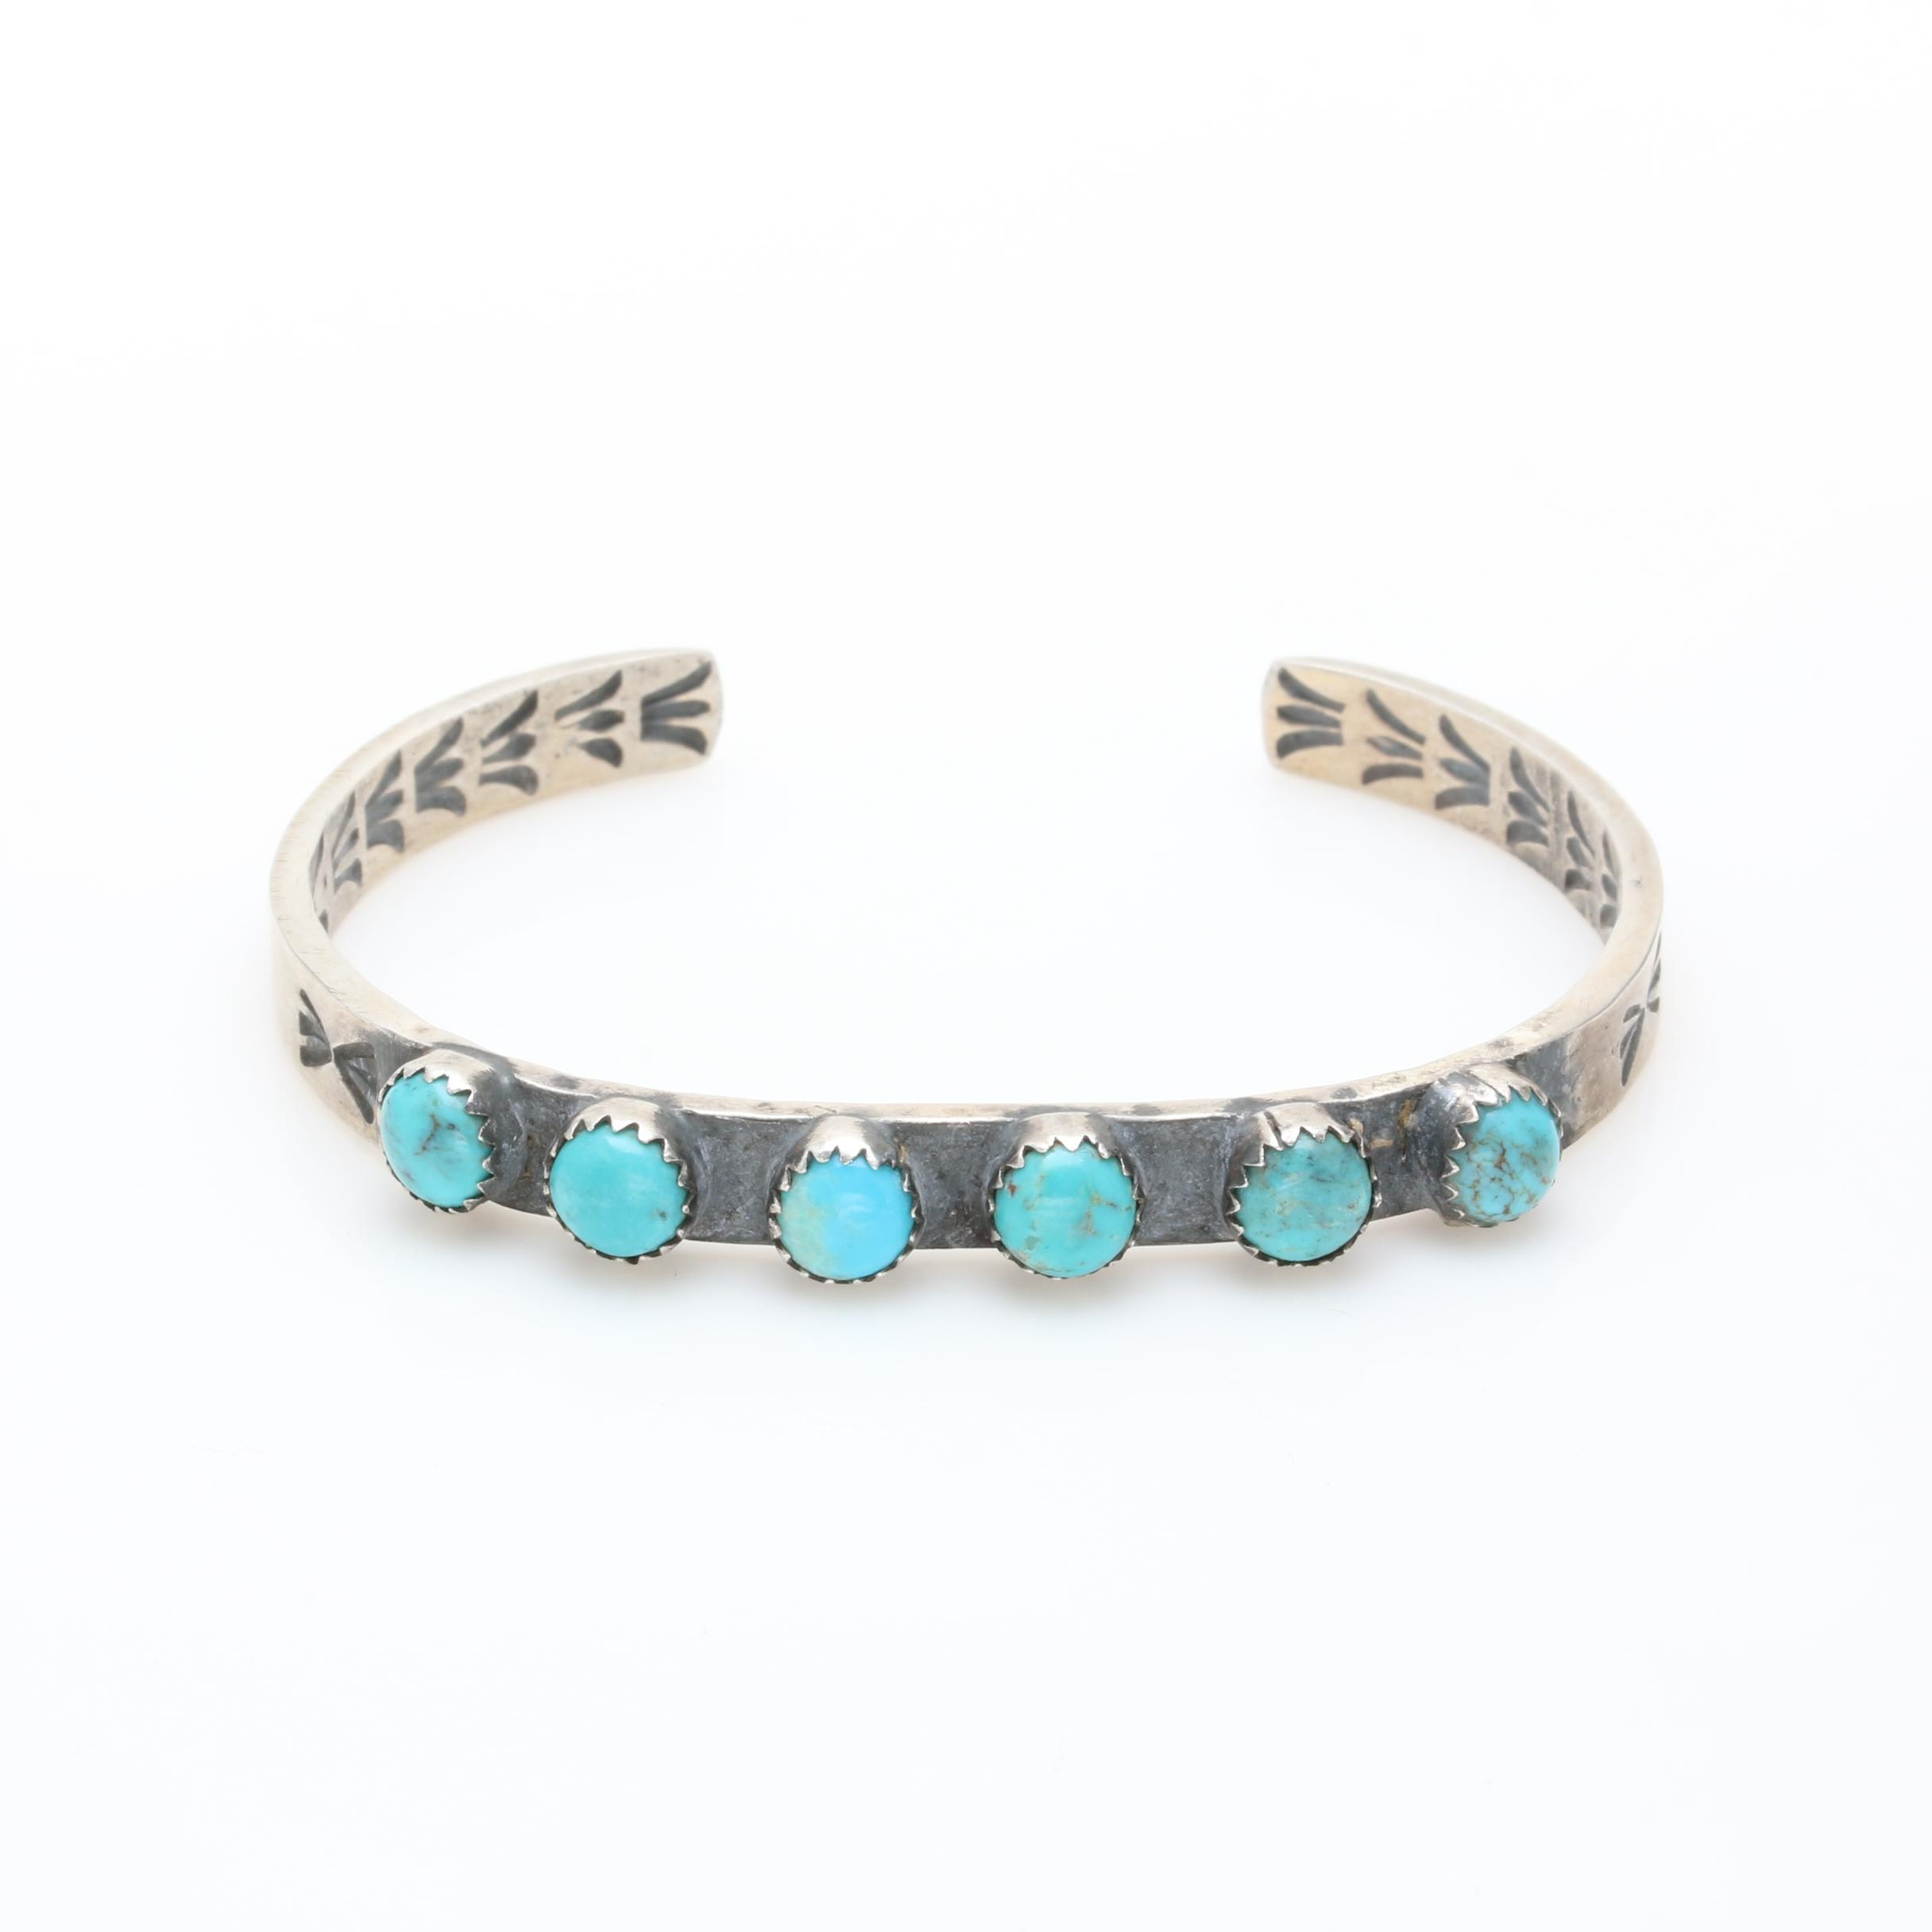 Victor Hicks Navajo Diné Sterling Silver Turquoise Cuff Bracelet